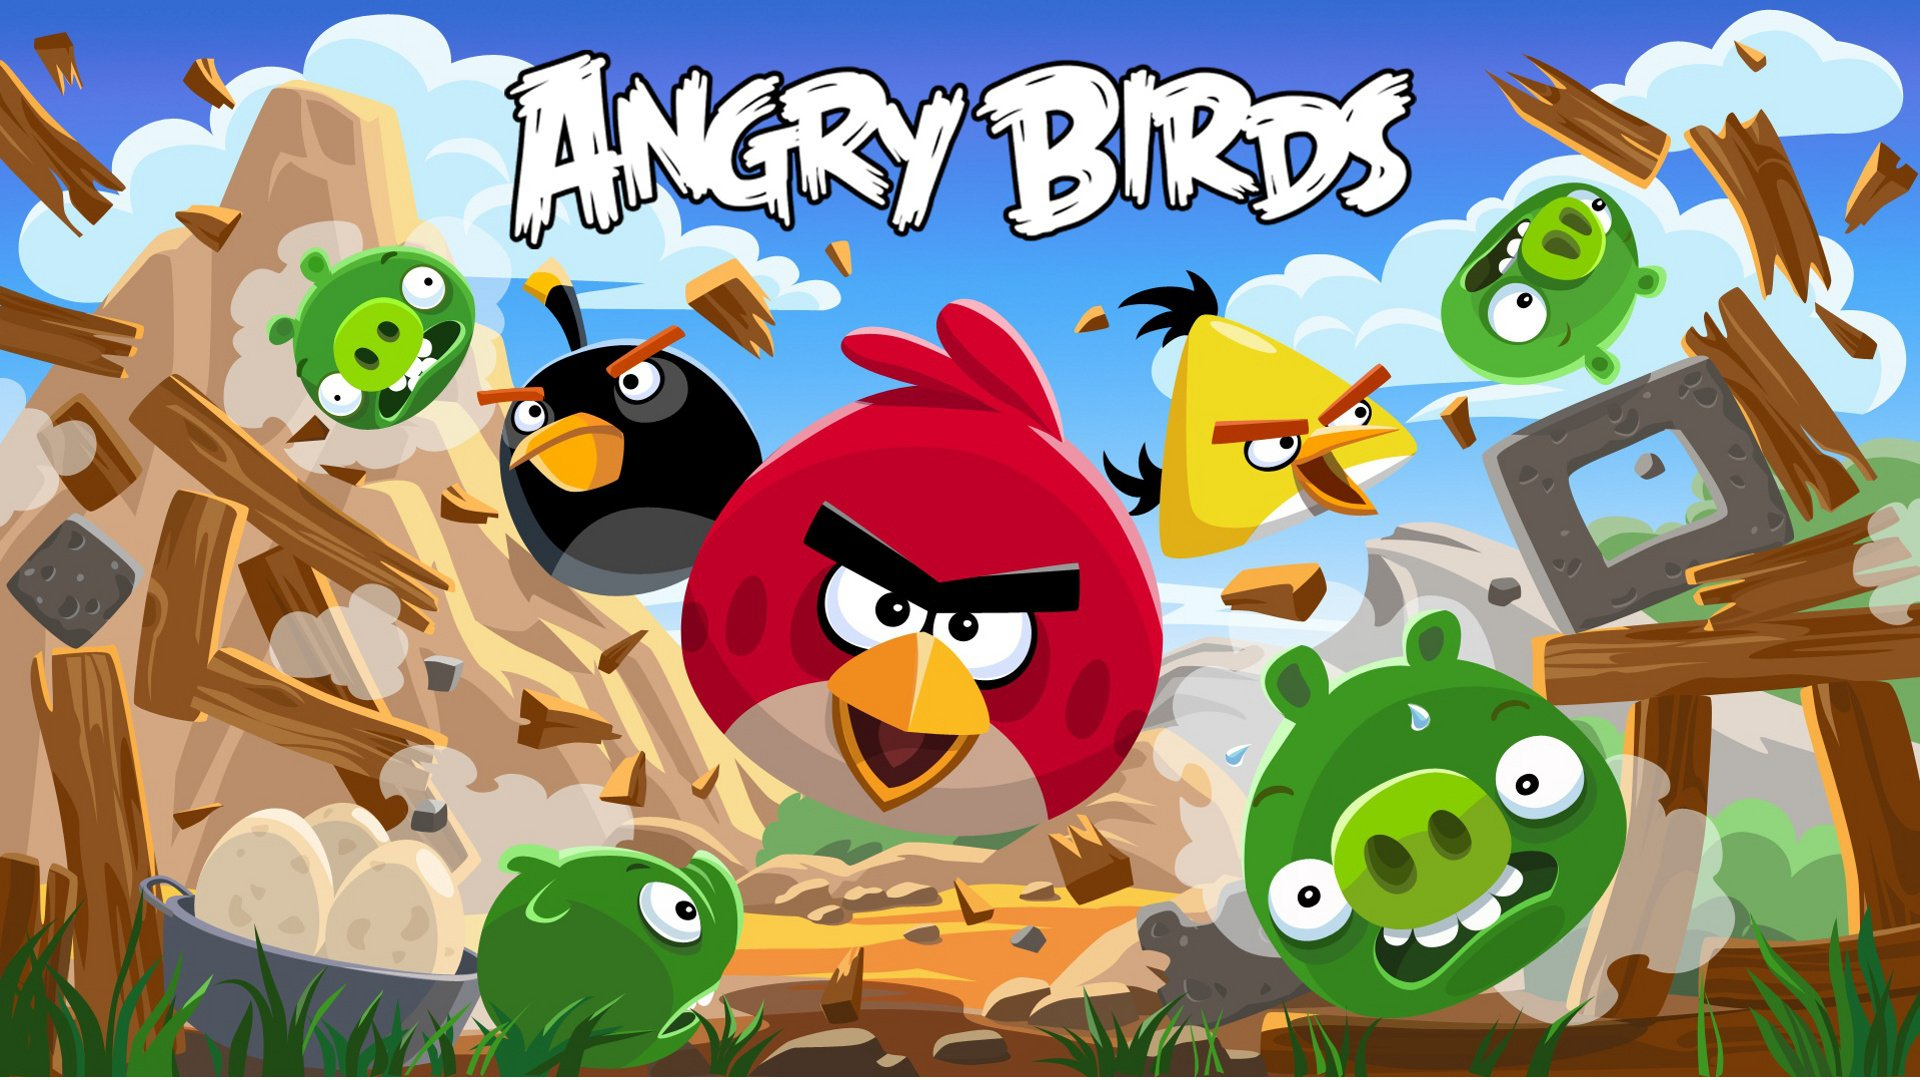 84 angry birds hd wallpapers | background images - wallpaper abyss